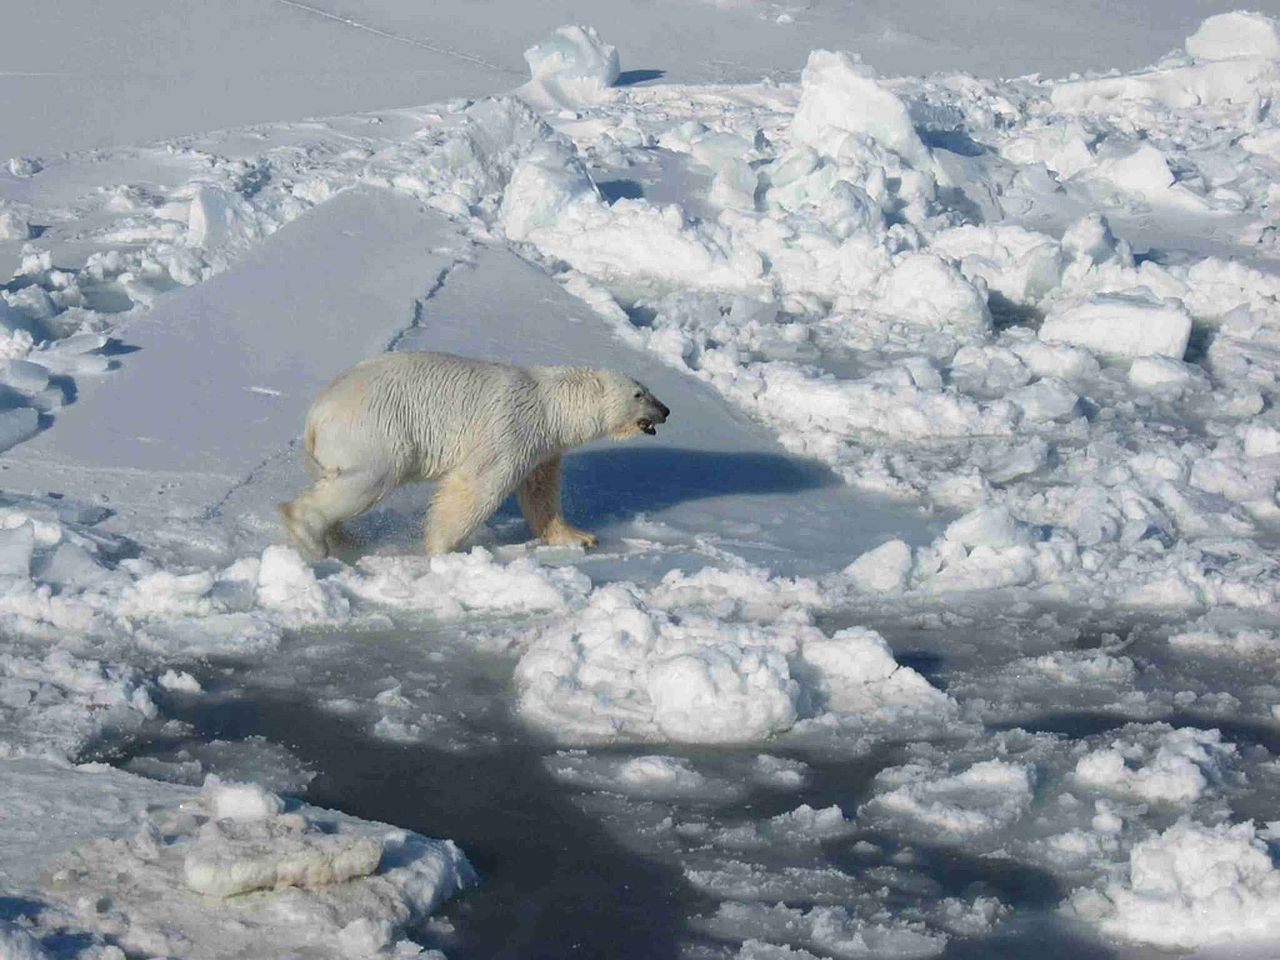 Scientific committee fingers climate change in latest species at risk assessments